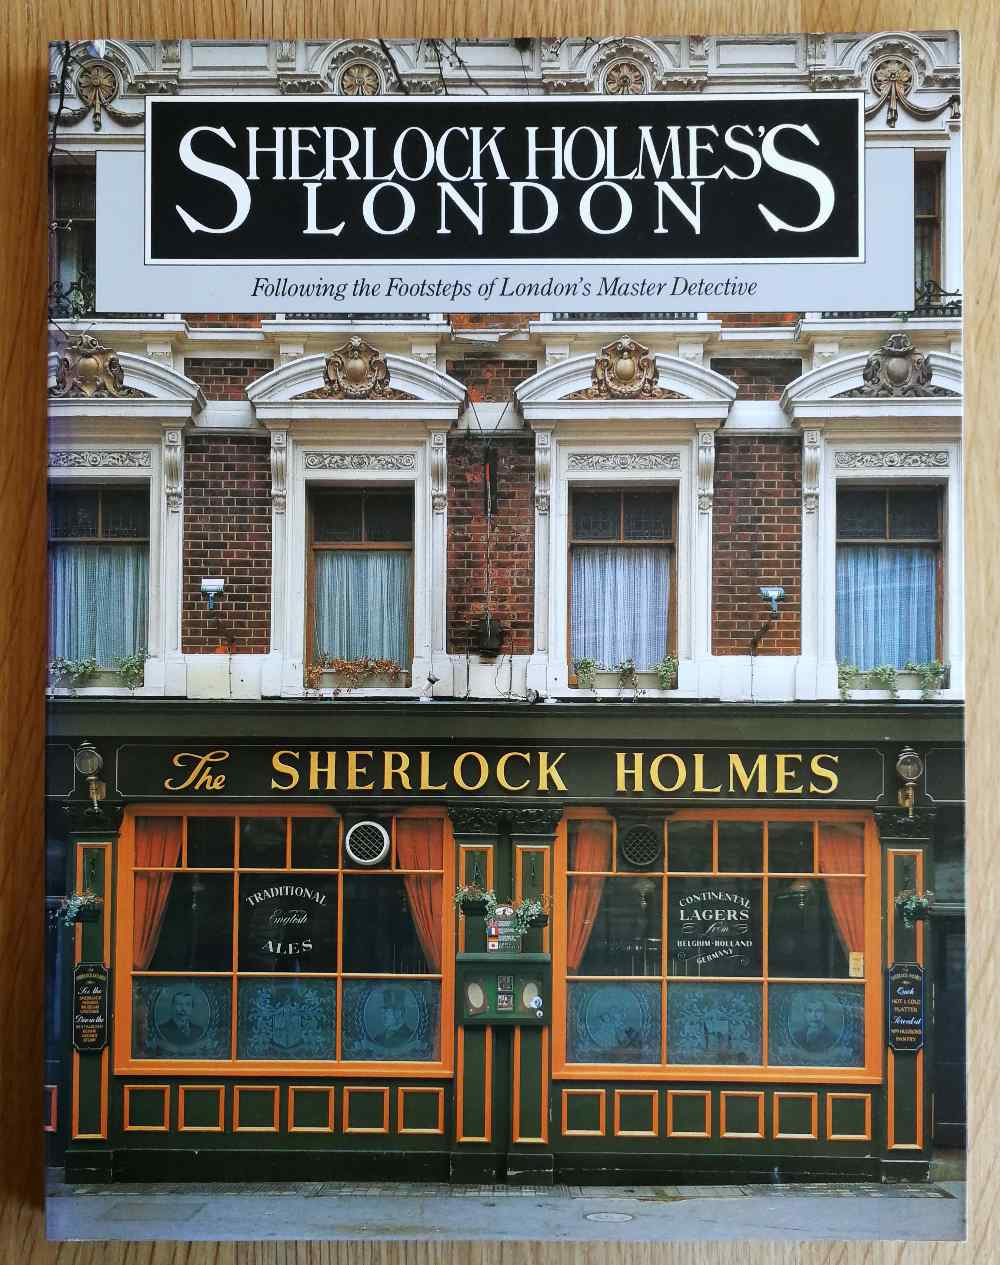 Sherlock Holmes's London : following the footsteps of London's master detective